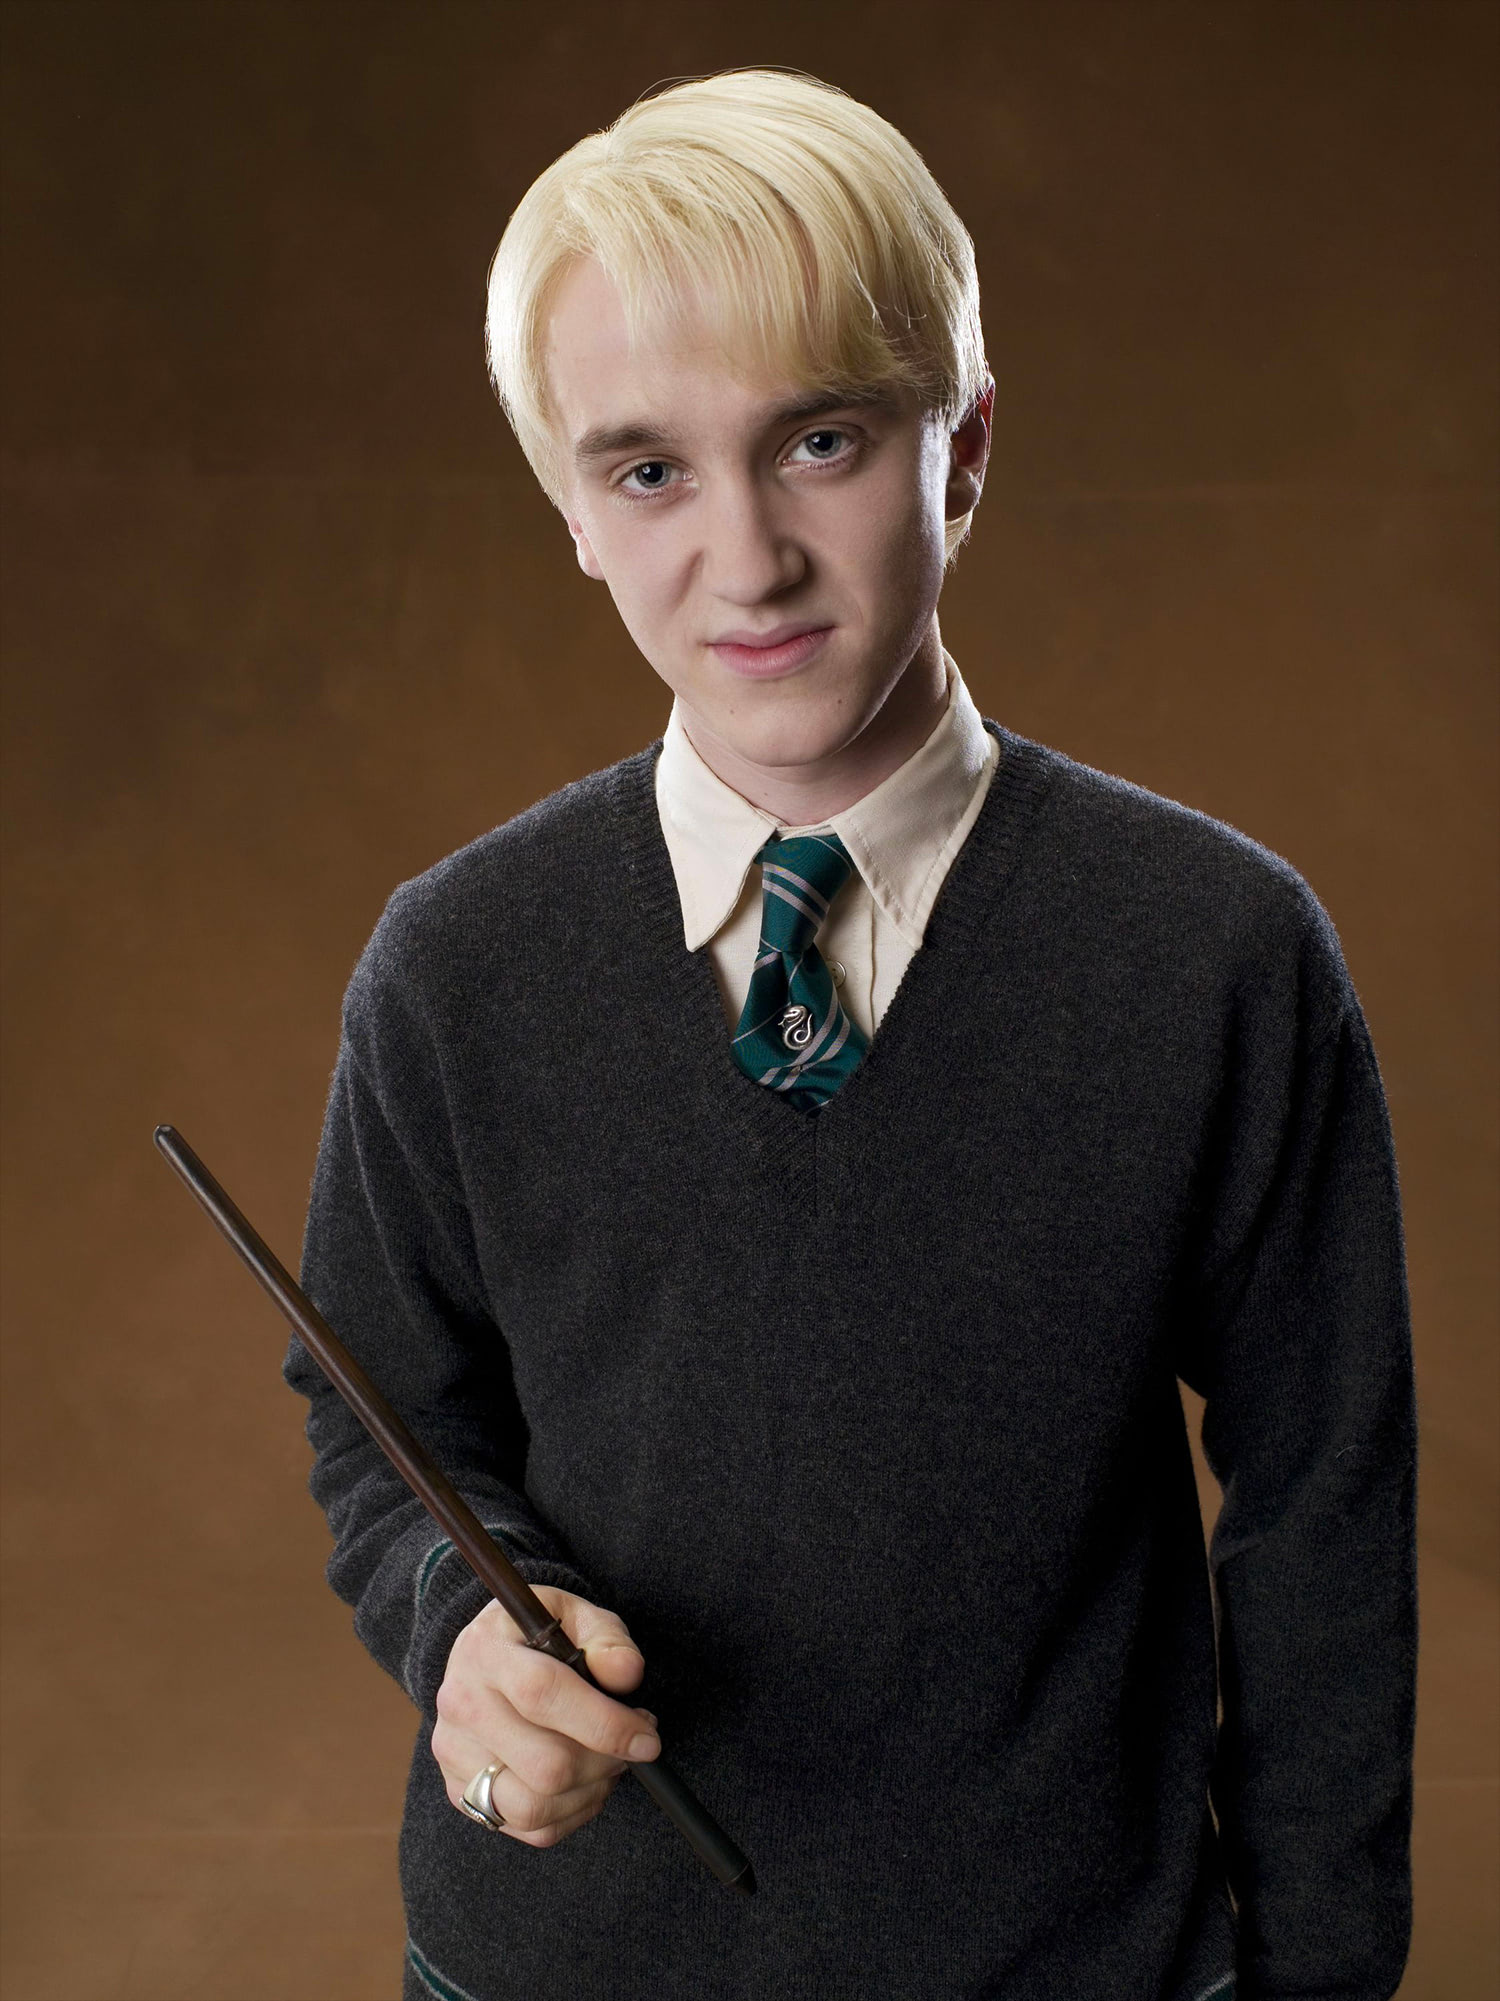 Draco Malfoy in 'Order of the Phoenix'